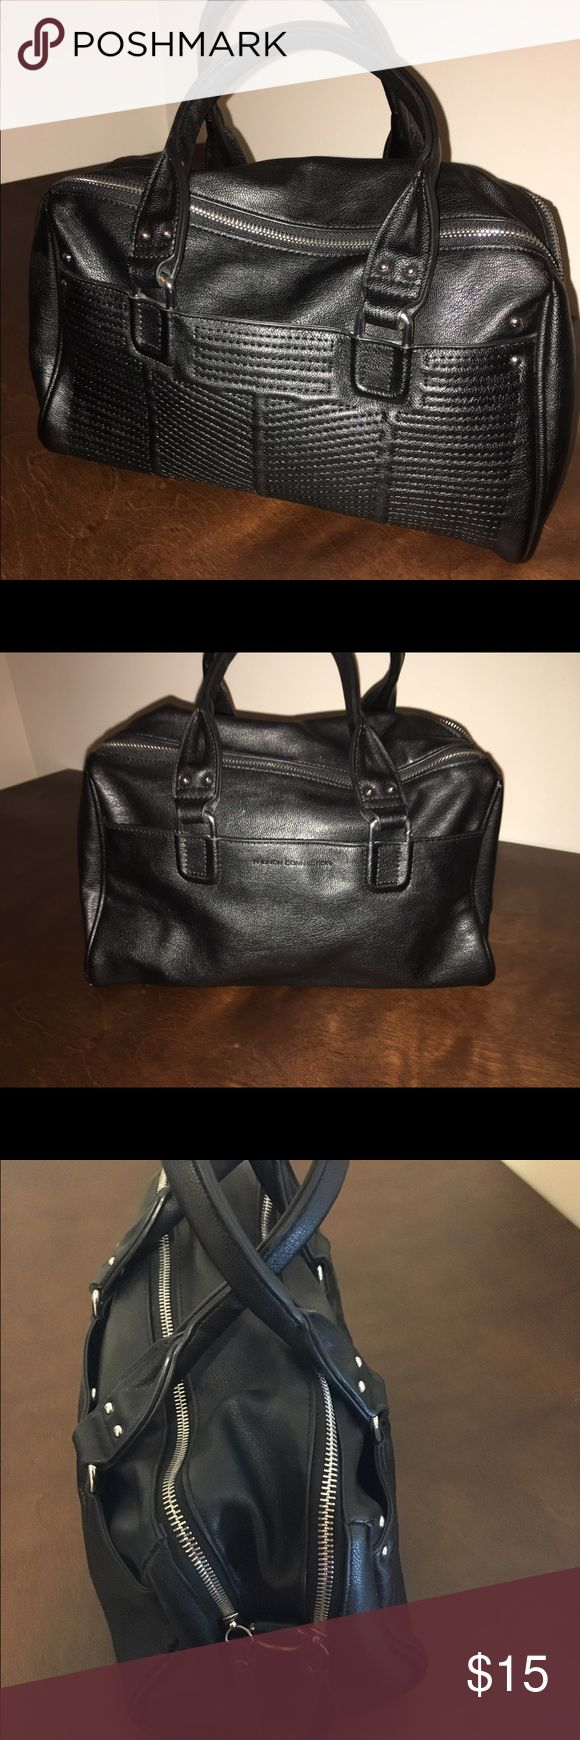 French Connection Bag A faux leather French Connection bag with beautiful detailed stitchings and silver hardware. It has two large compartments and two outer pockets on each side. It is missing the longer strap. French Connection Bags Totes